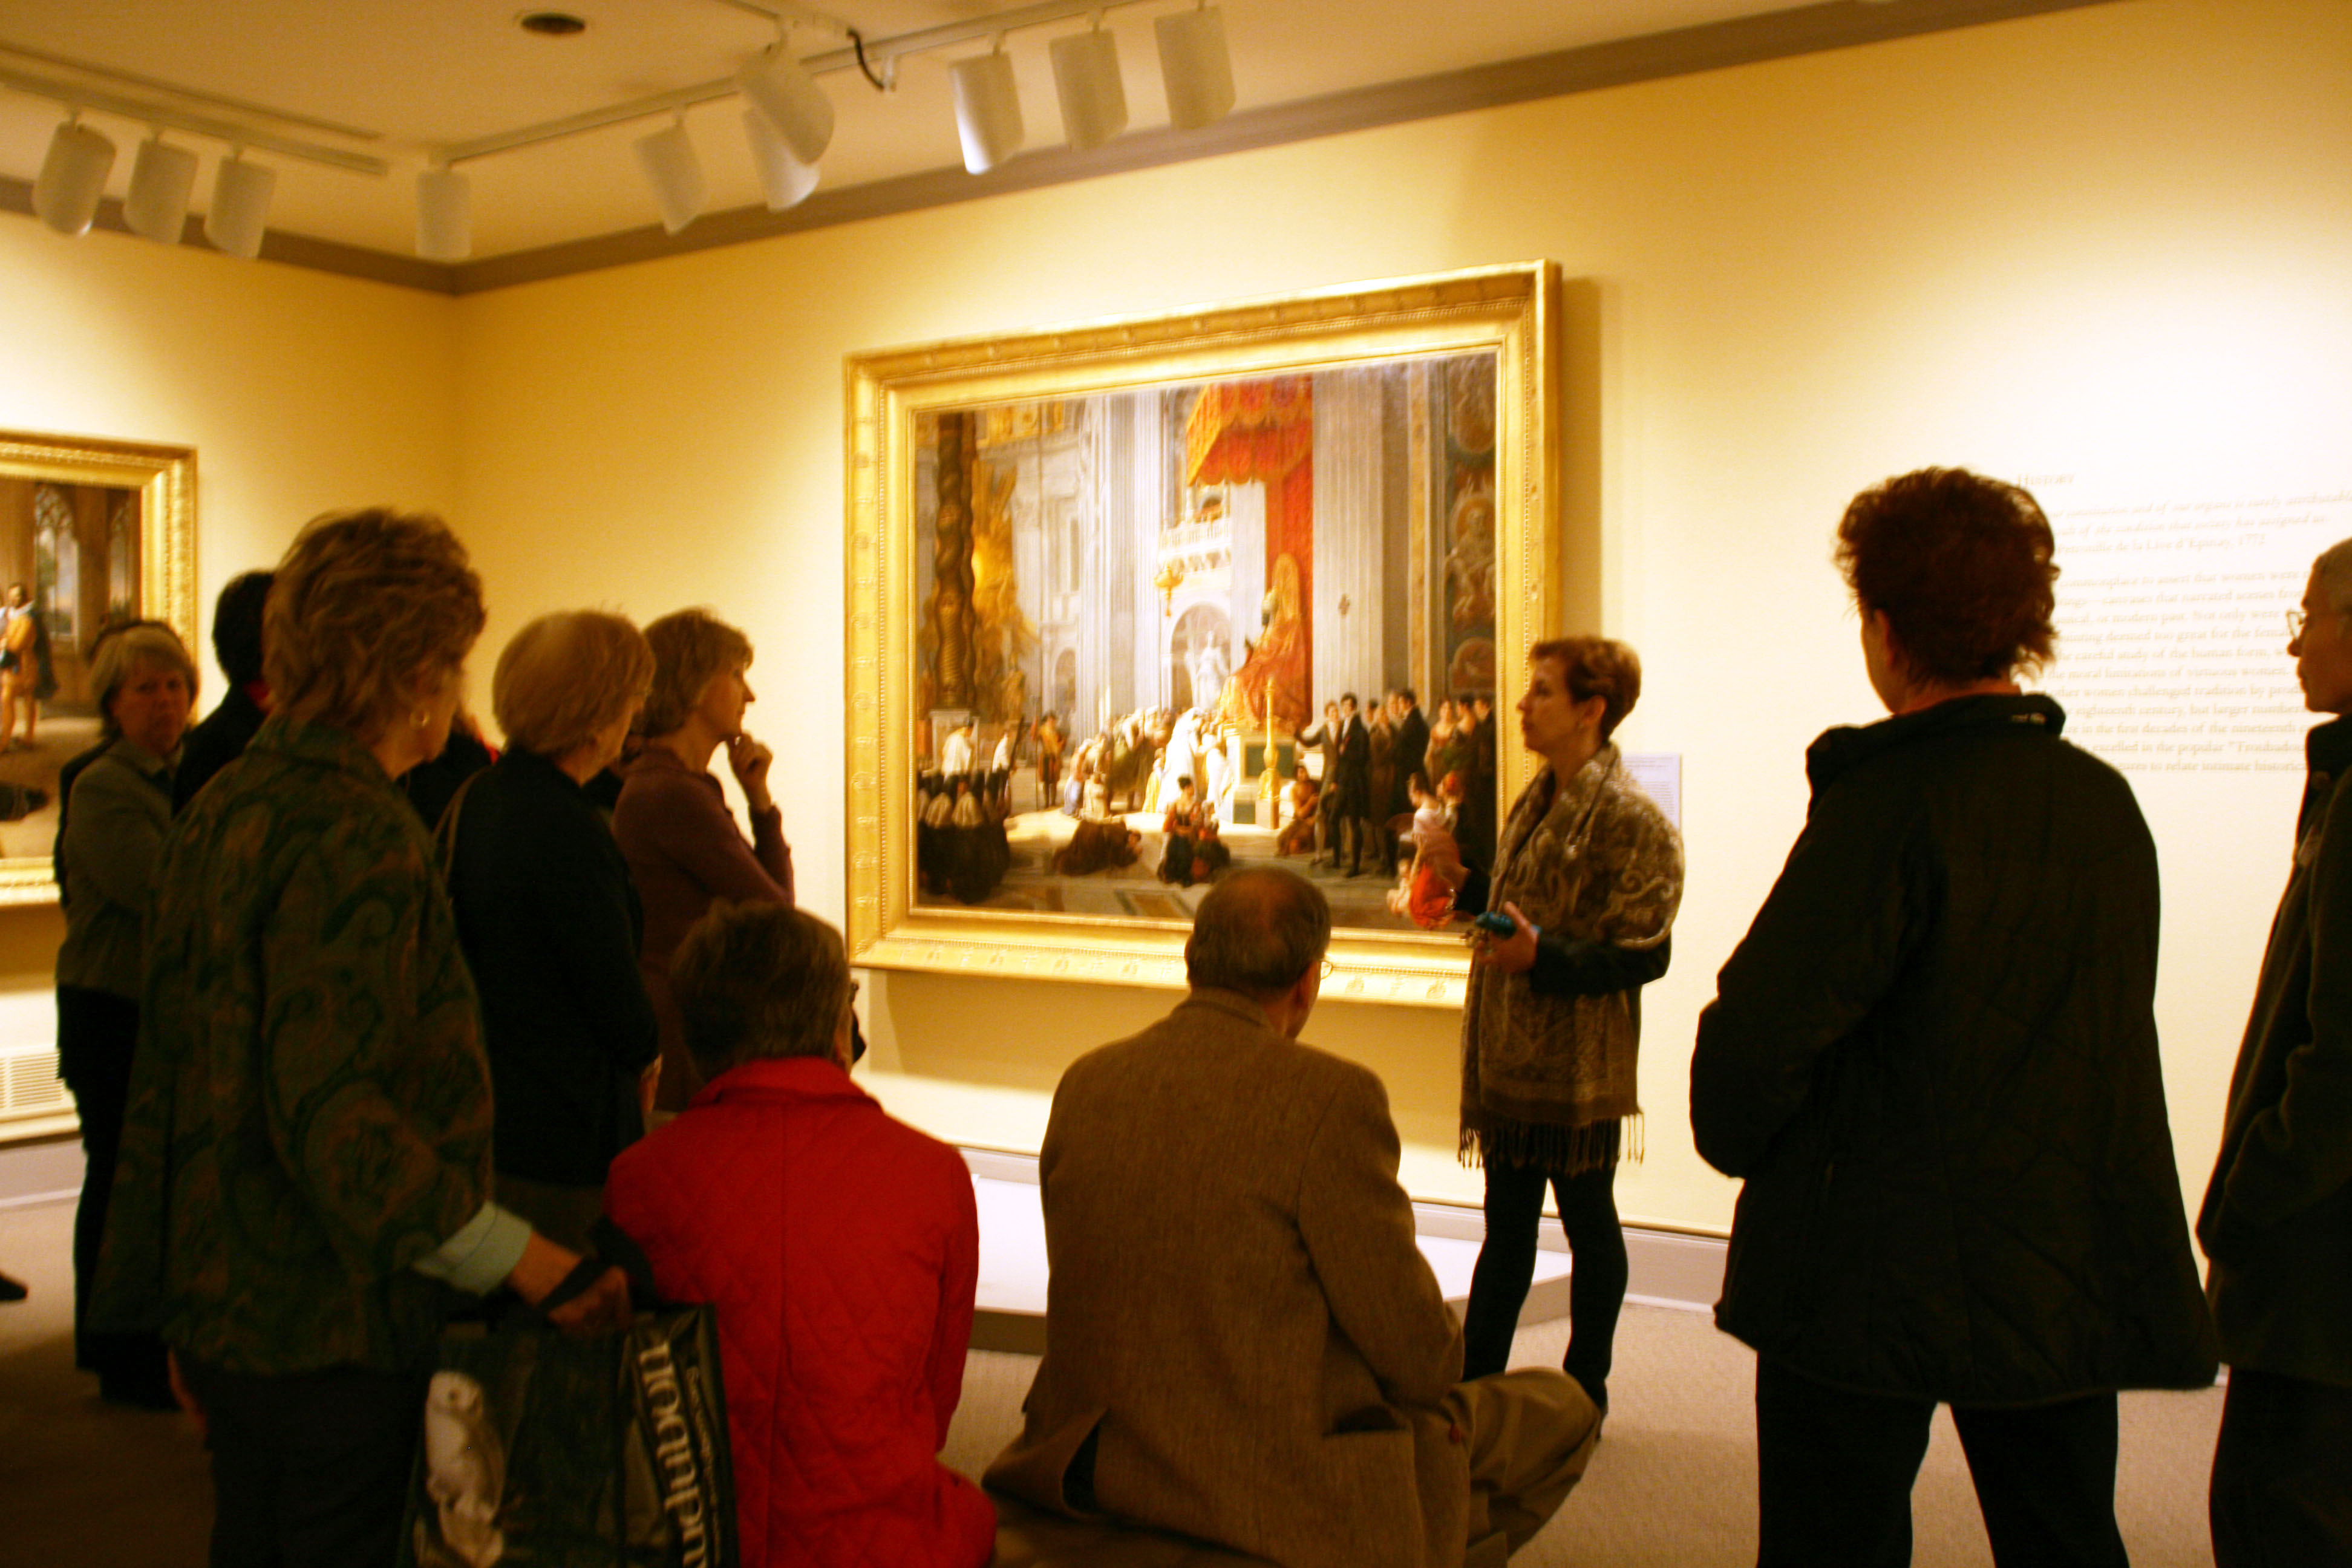 Chief Curator Jordana Pomeroy leads a tour on Member Preview Day